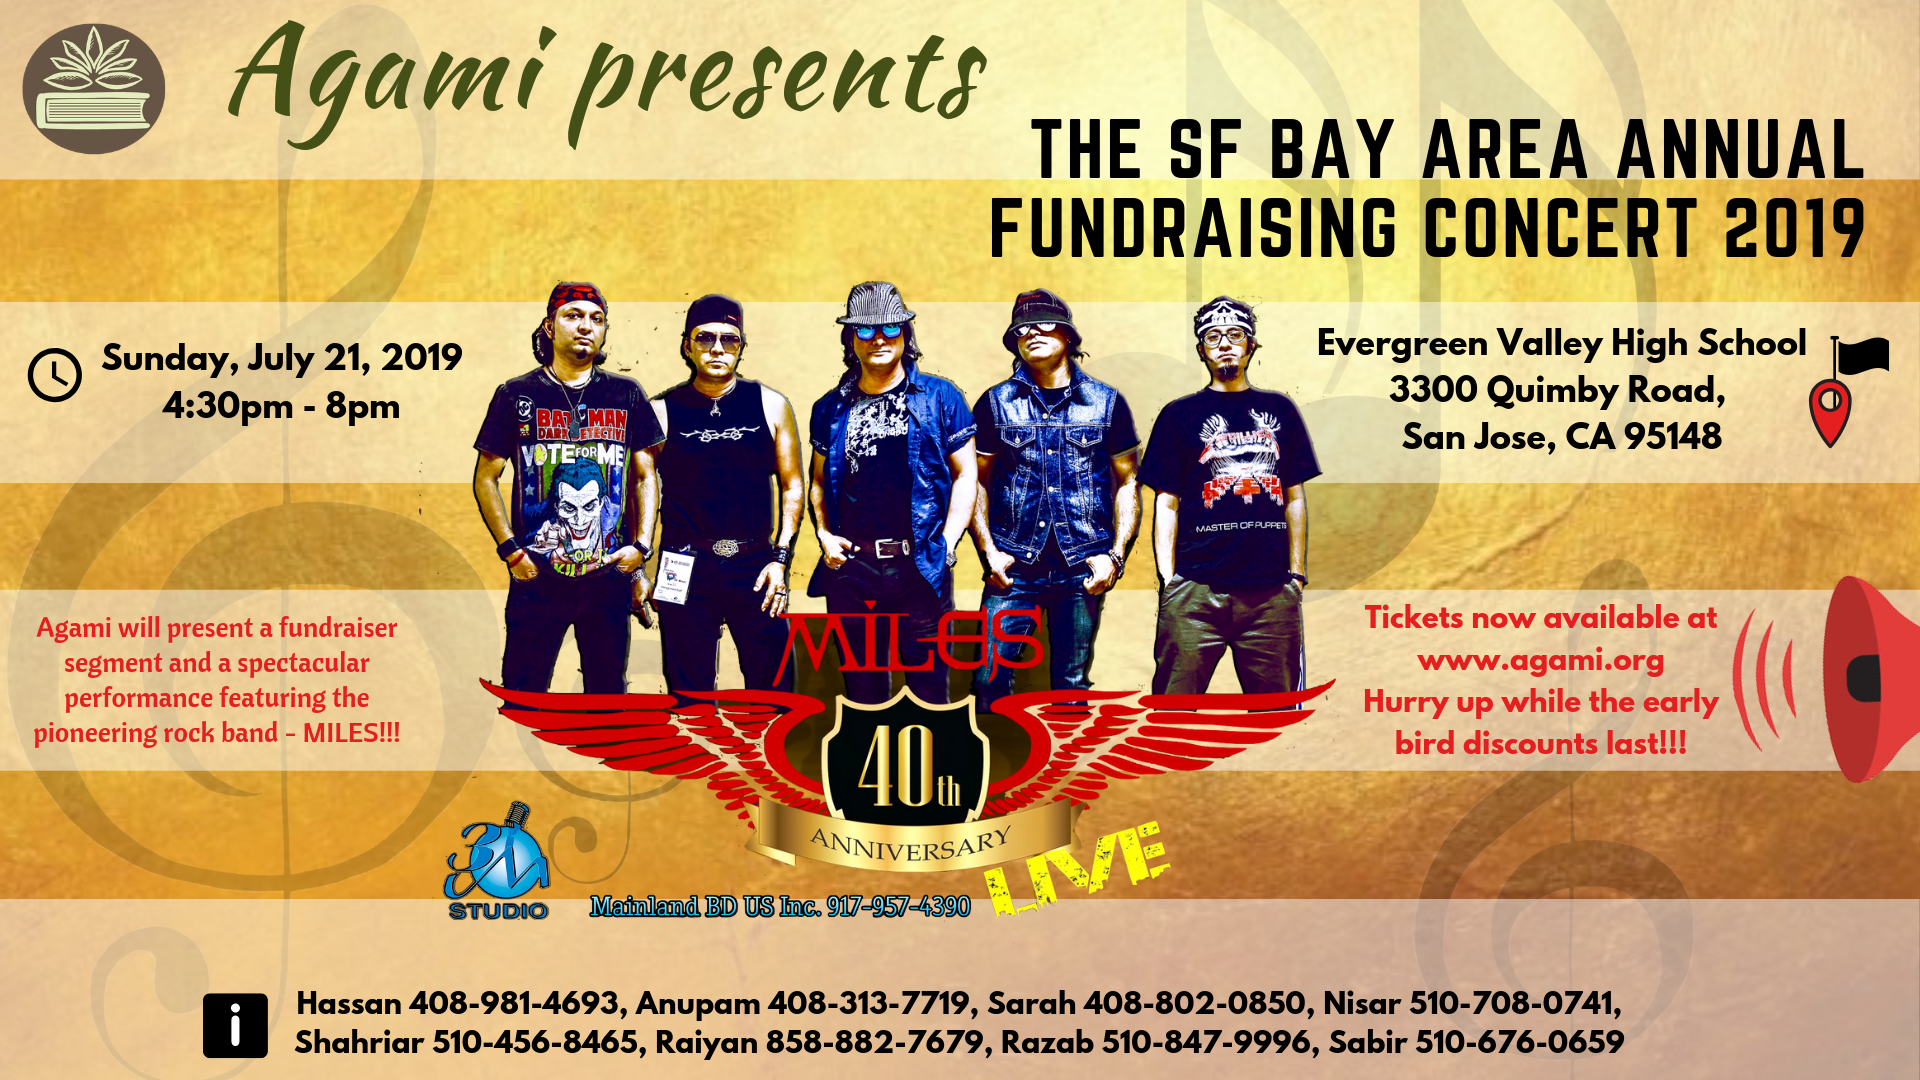 the SF bay area annual fundraising concert 2019.png